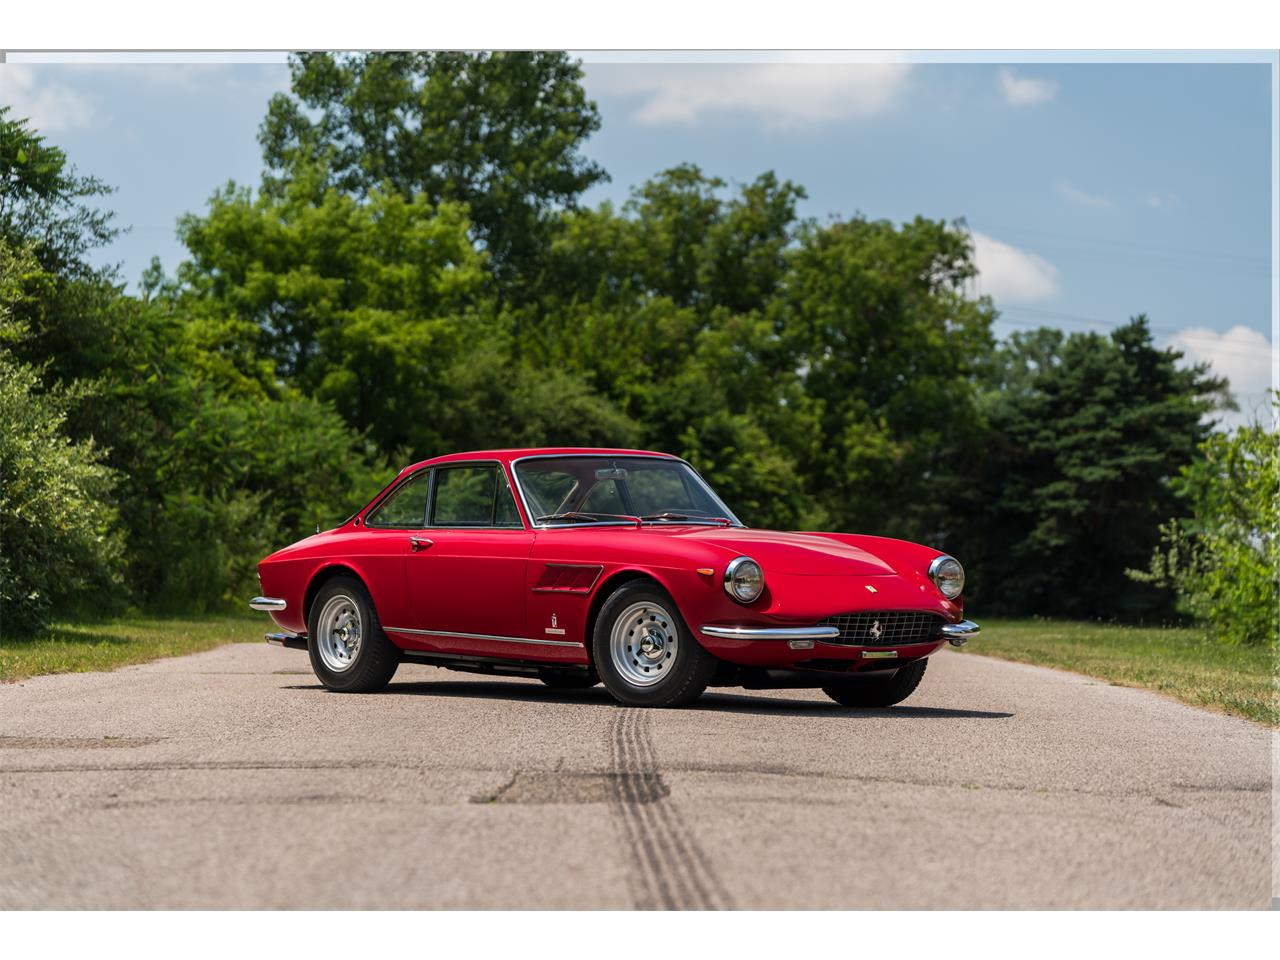 Large Picture of 1967 Ferrari 330 GTC located in Pontiac Michigan - $650,000.00 Offered by LBI Limited - QNXU